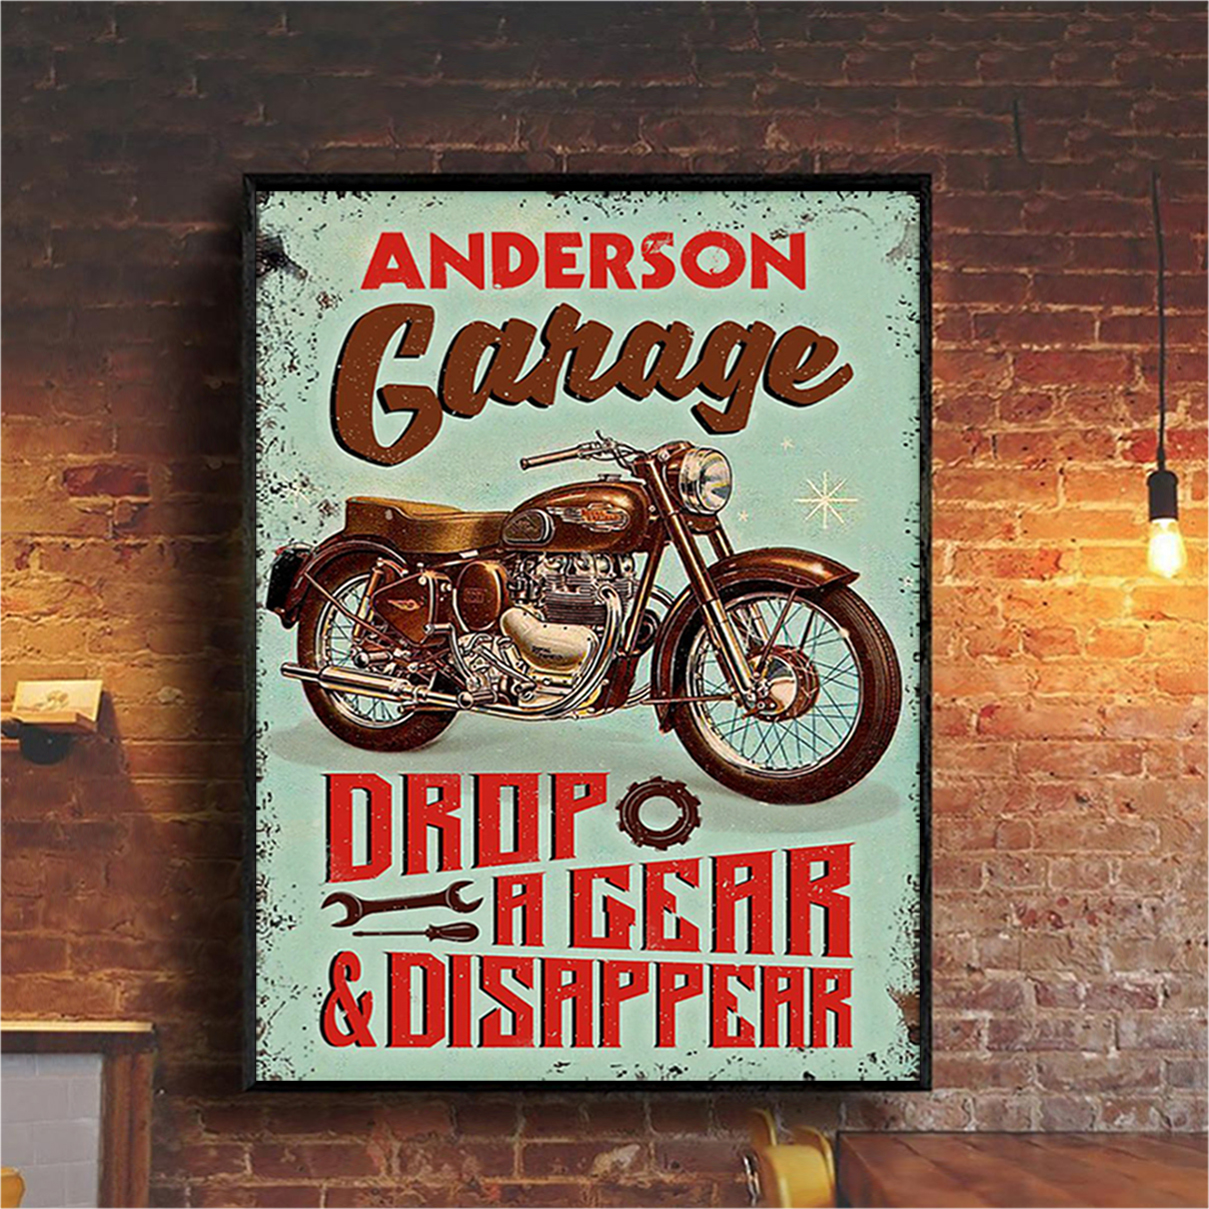 Personalized custom name motorcycle garage drop a gear and disappear poster A2